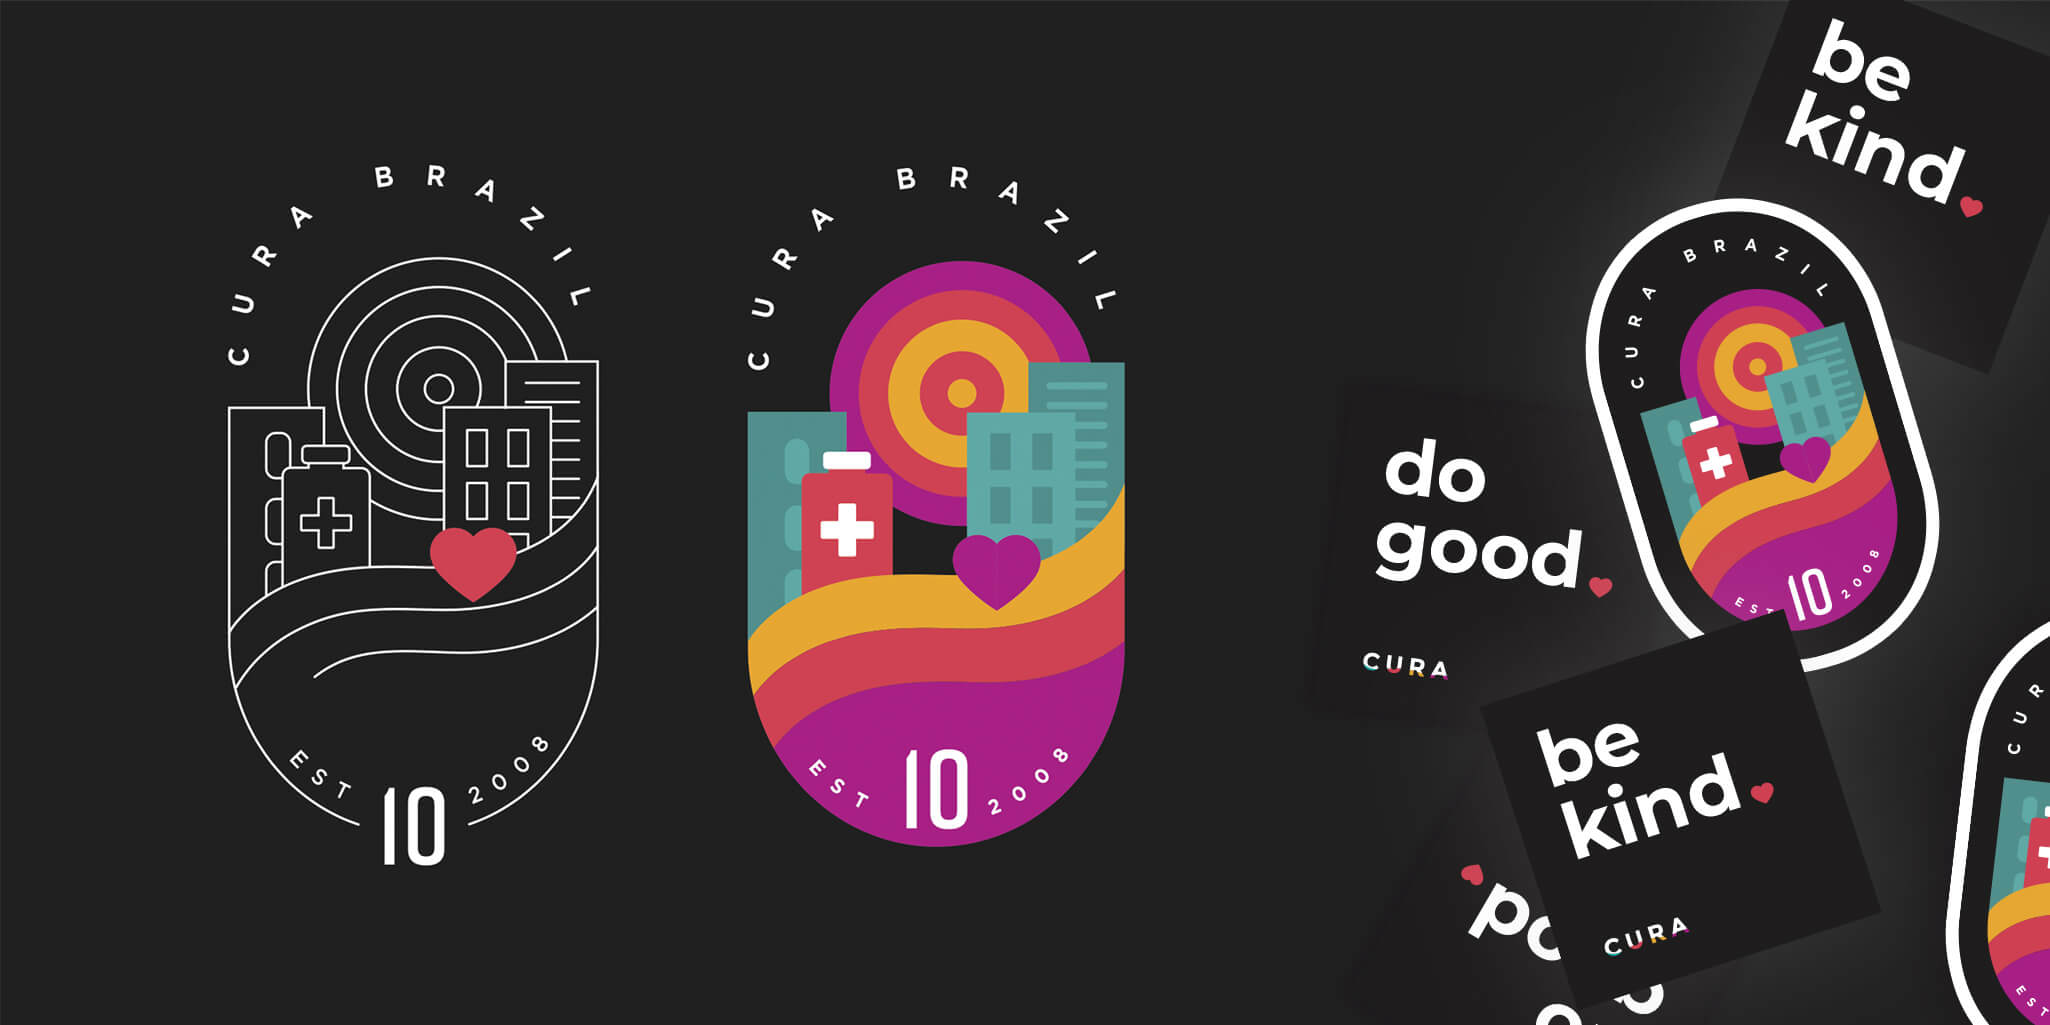 CURA Brazil badge illustration and stickers